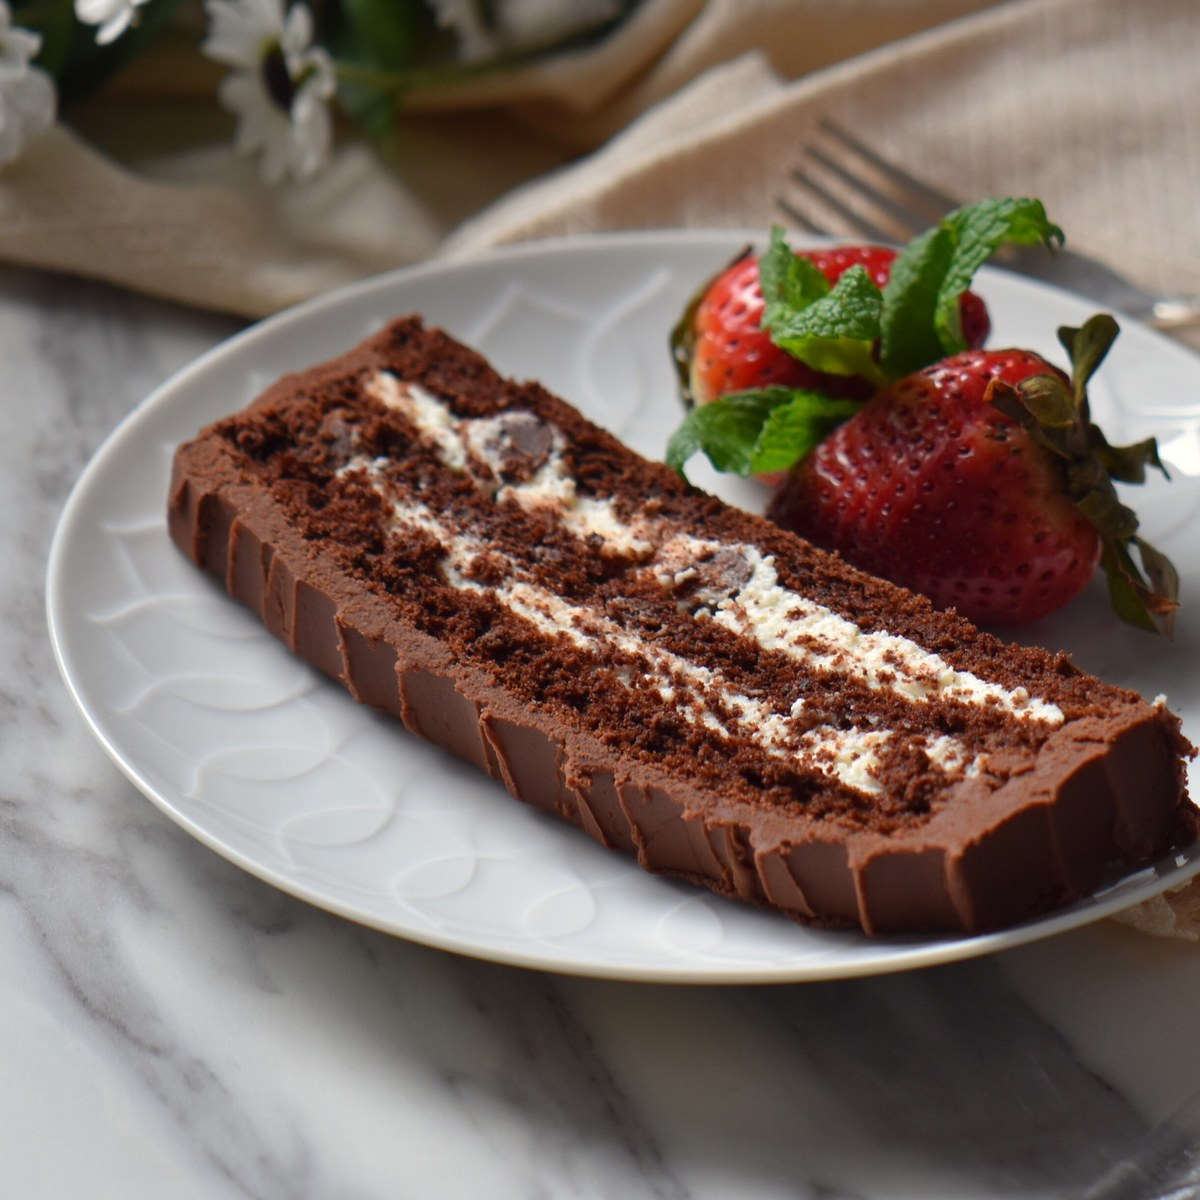 A slice of Chocolate Cream cake with strawberries on a white plate.